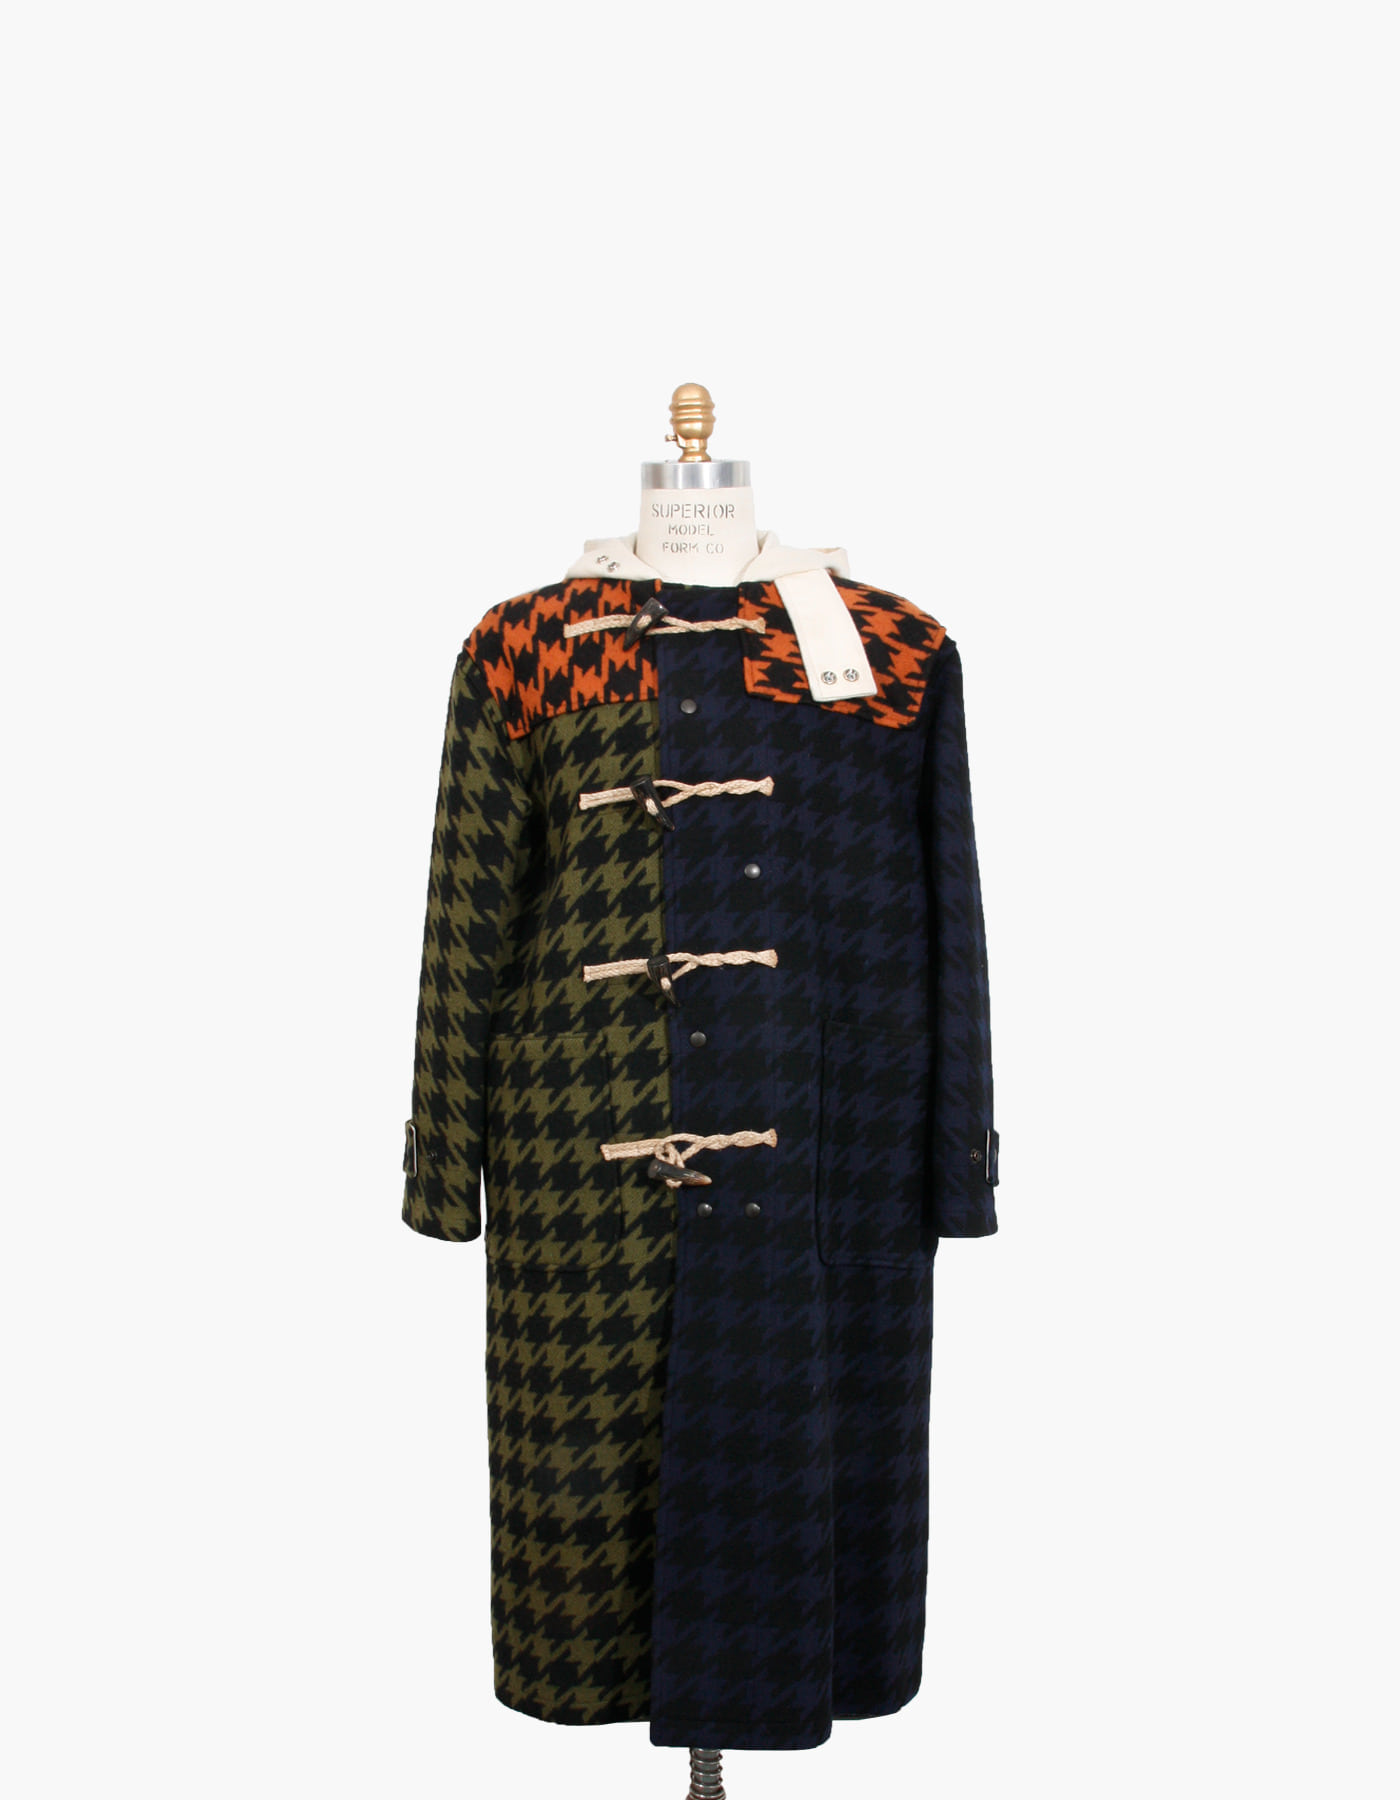 HOUNDSTOOTH WOOL DUFFLE COAT / GINGER-NAVY-FATIGUE